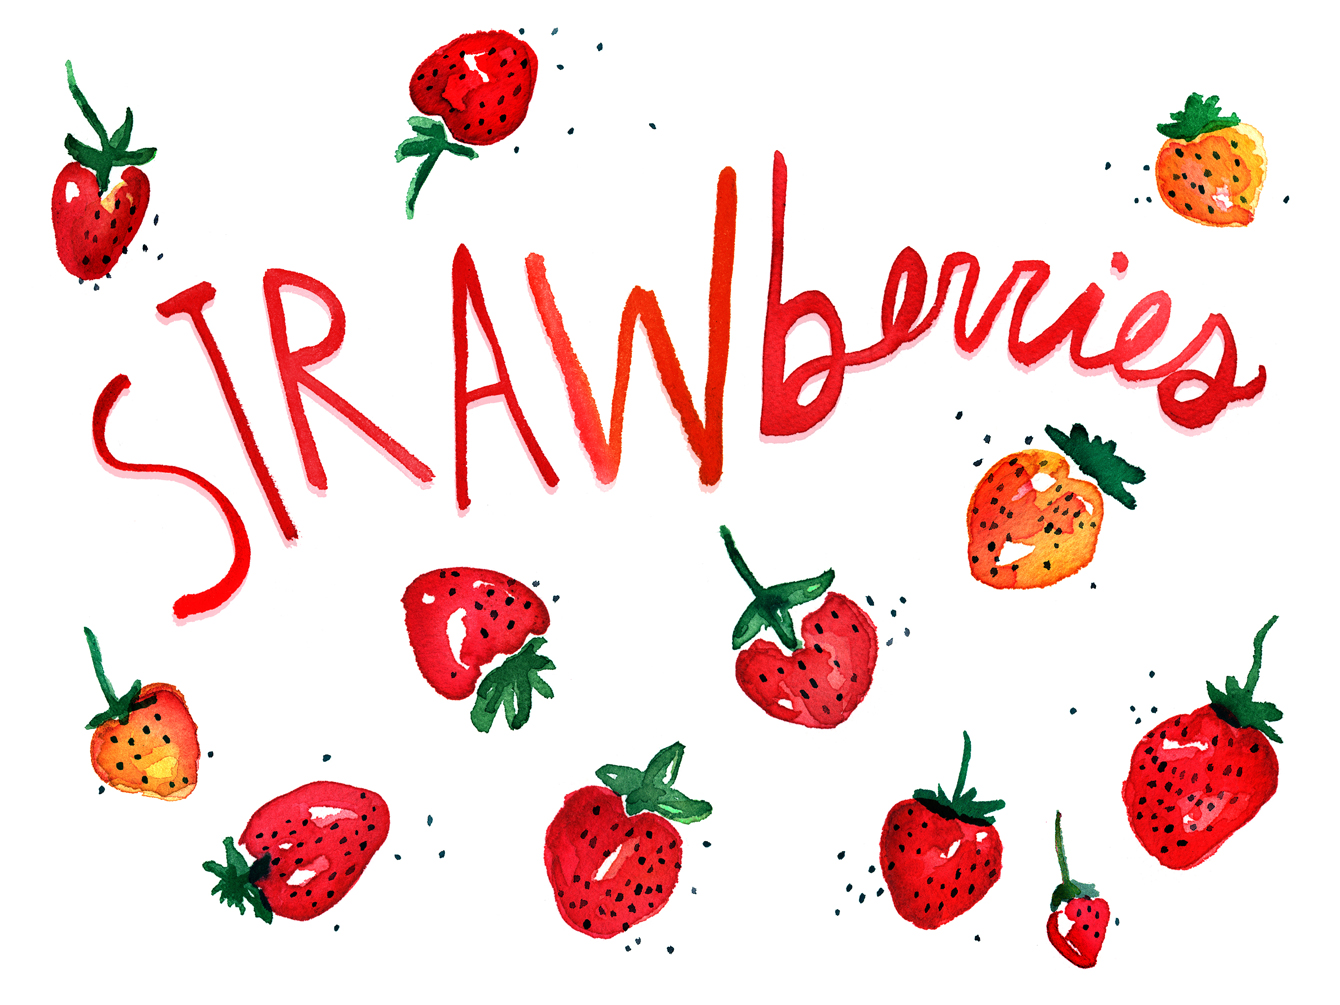 strawberries watercolor illustration